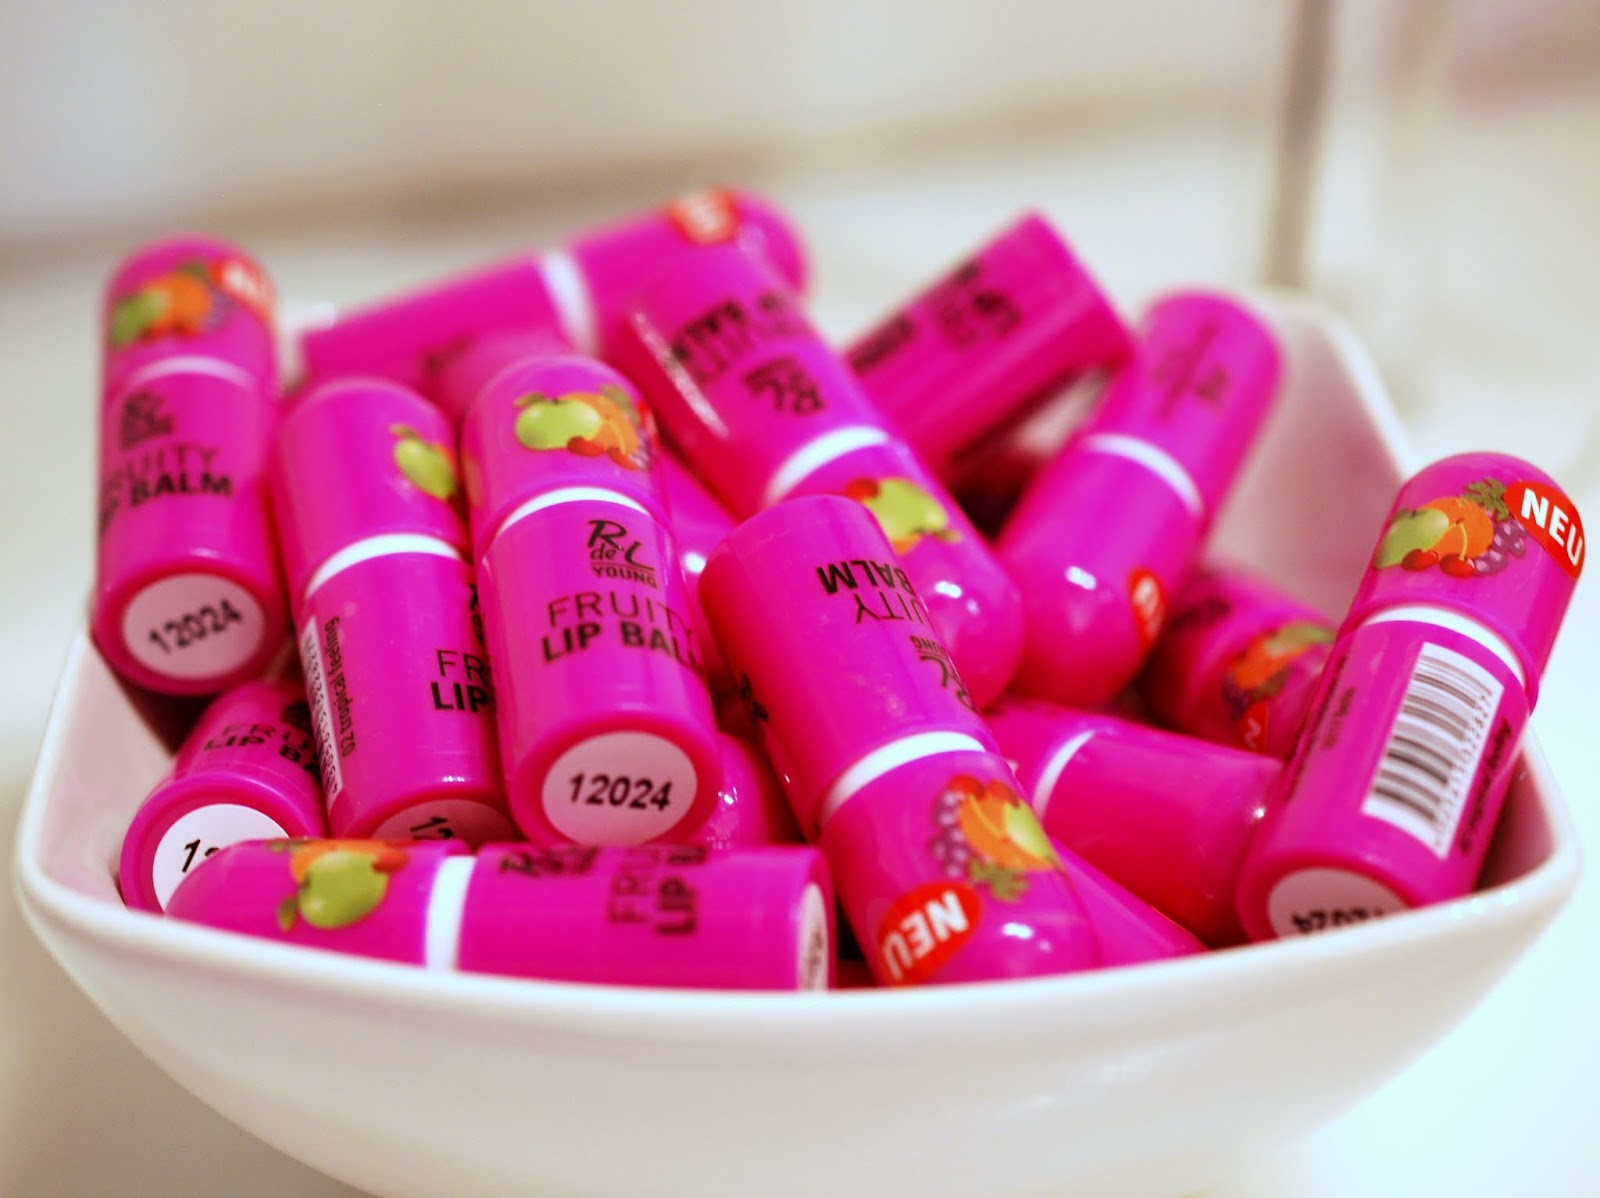 Rival de Loop Young Fruity Lipbalm